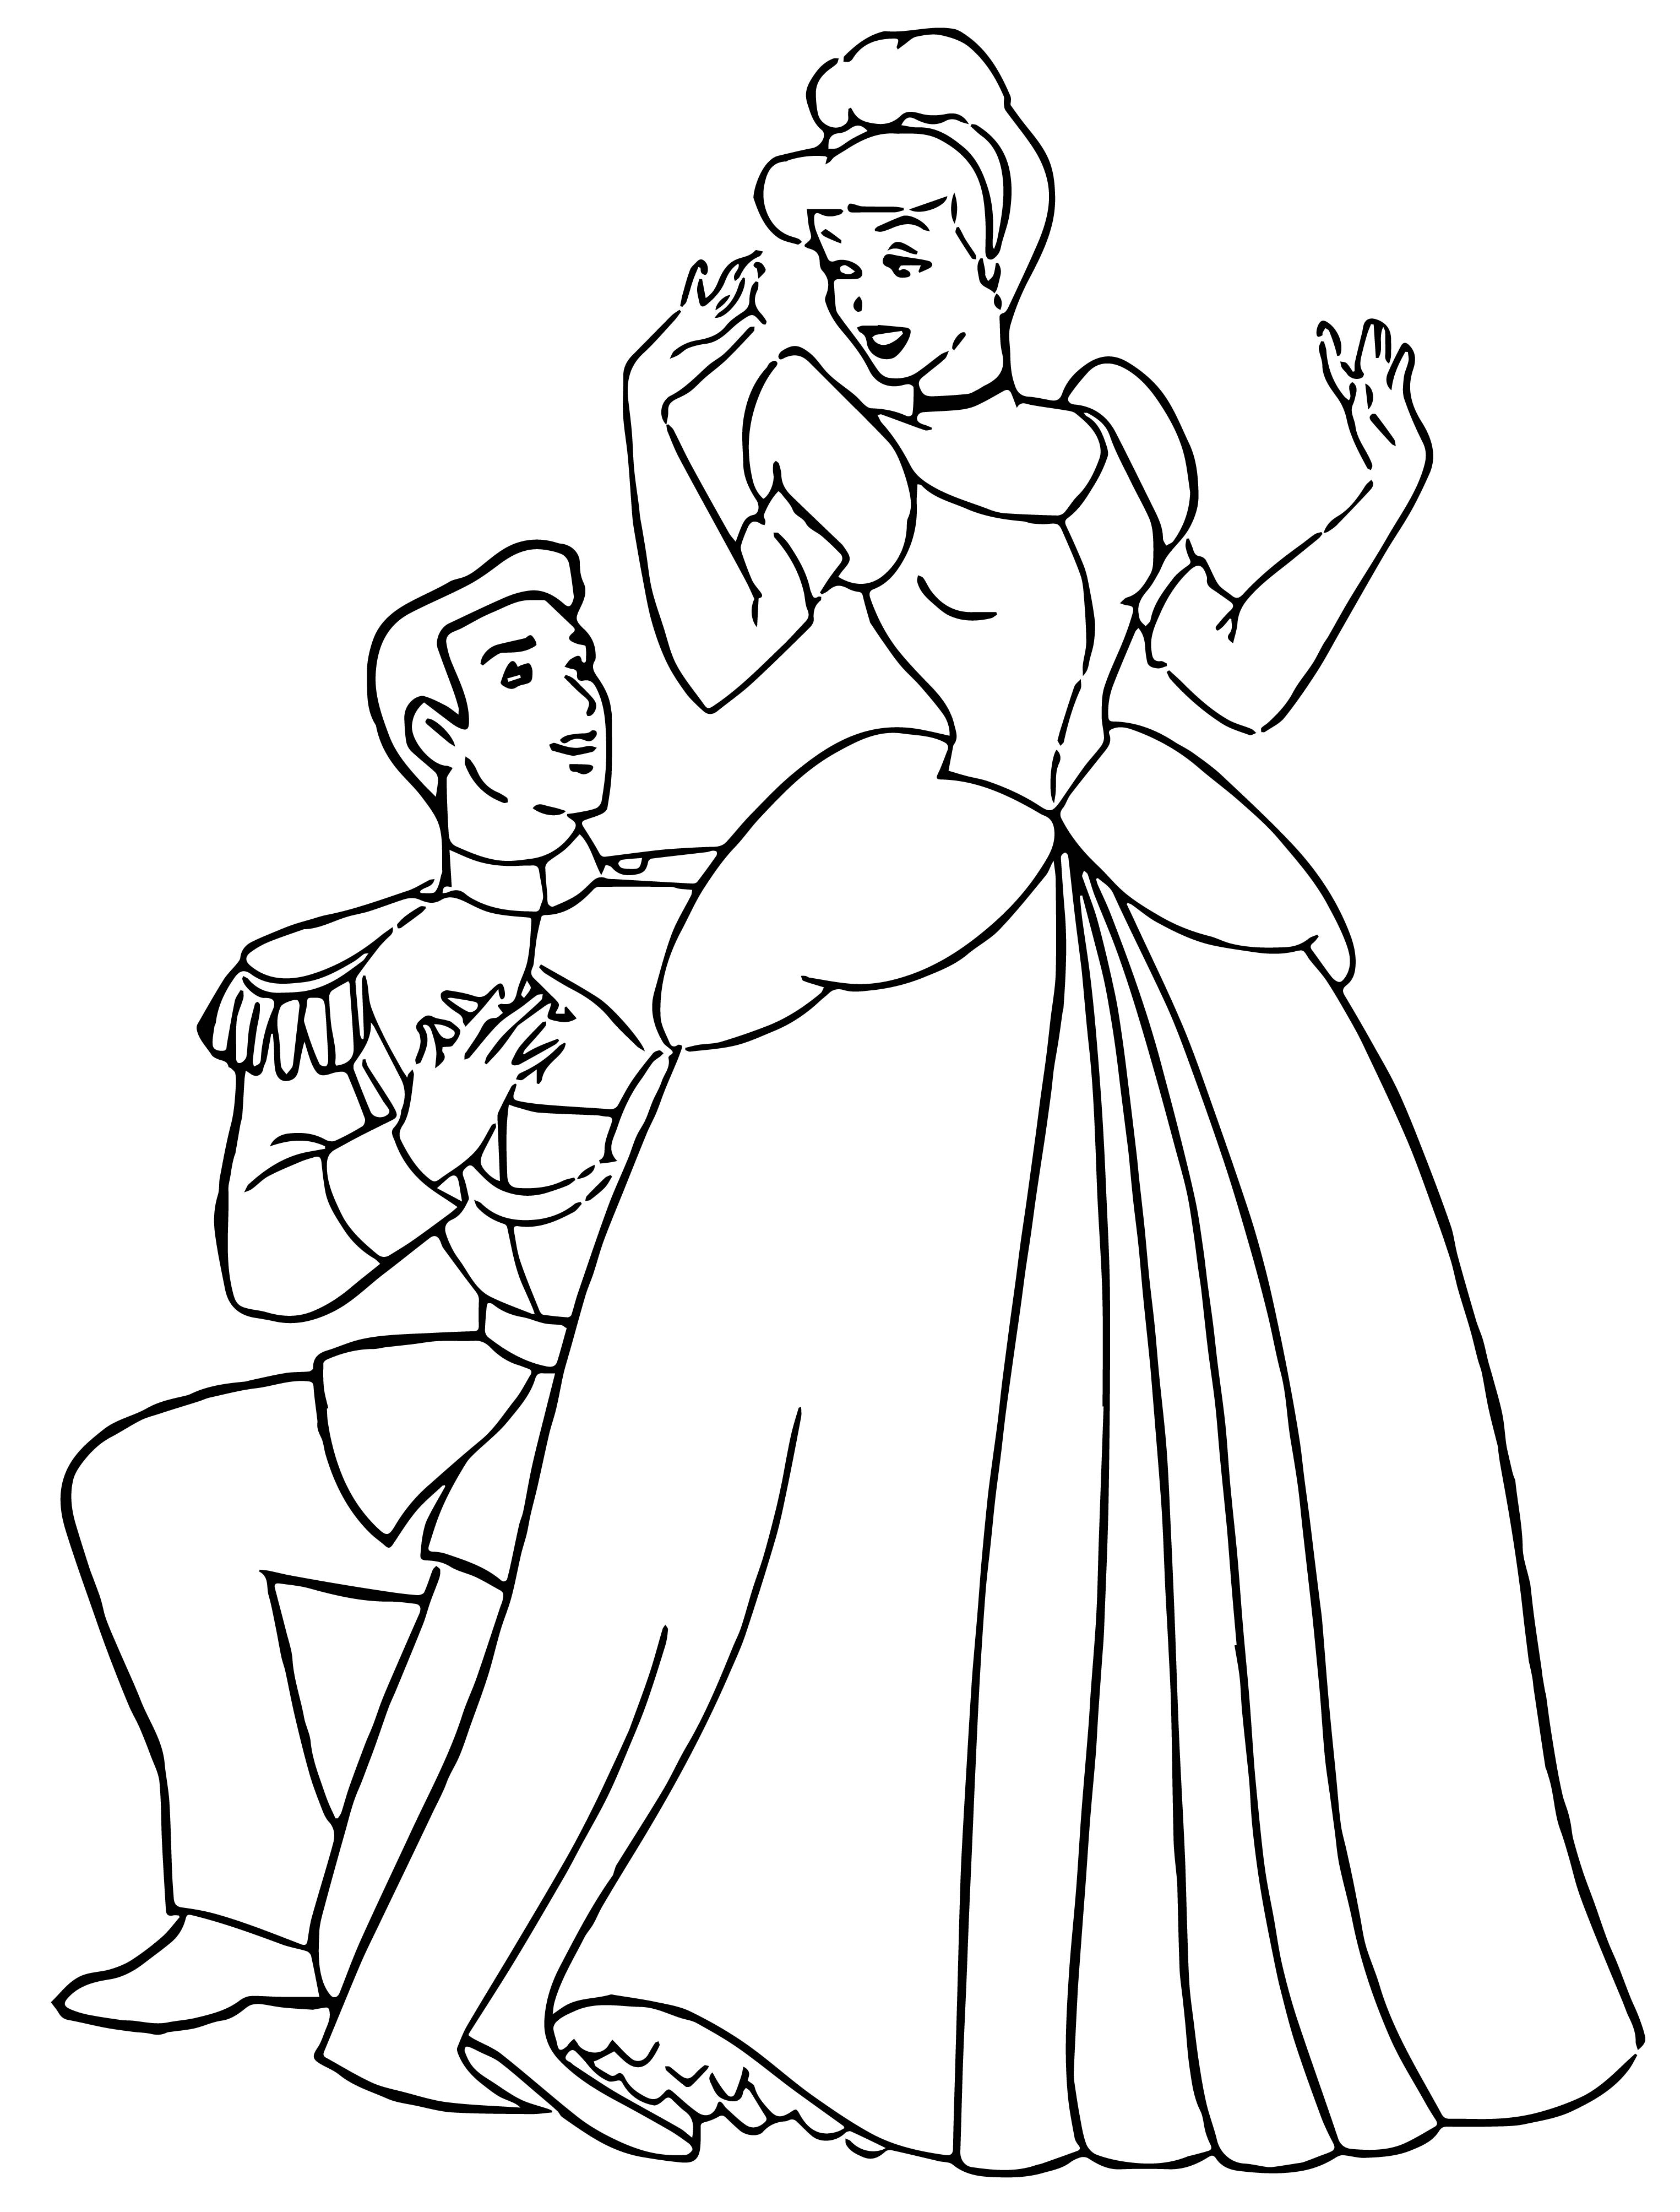 Cinderella And Prince Charming Coloring Pages 31 ...